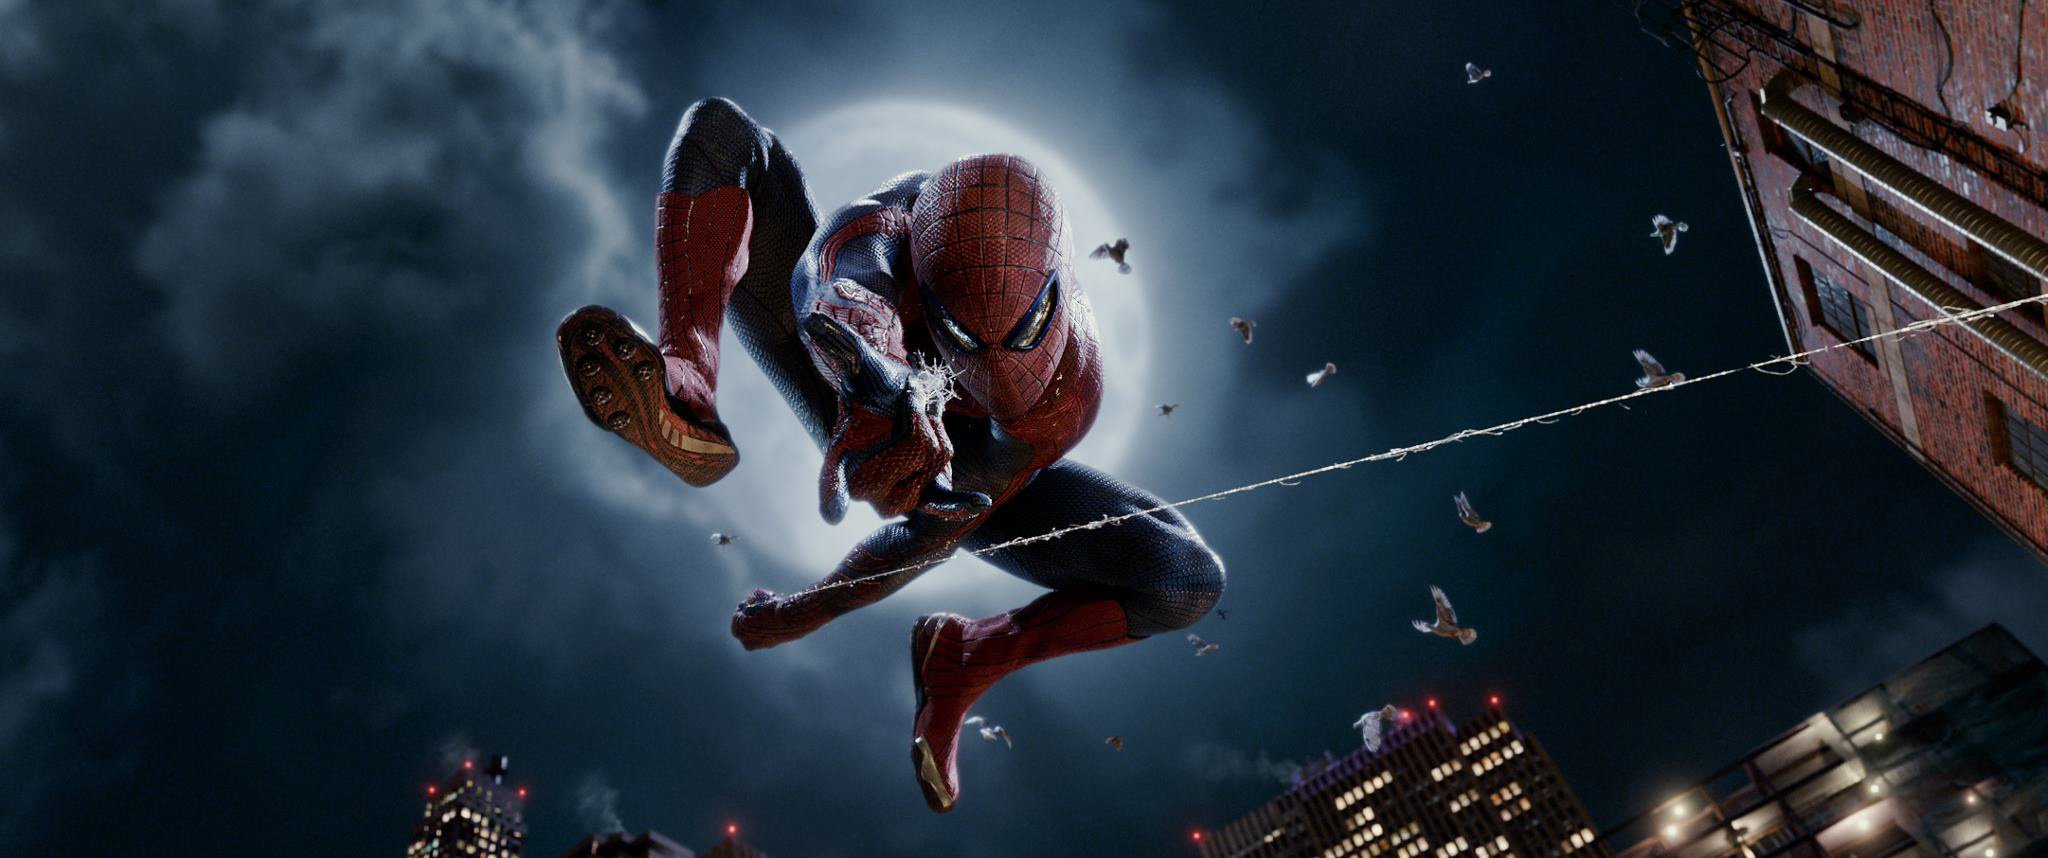 New HQ Promo Shots for The Amazing Spider-Man - ComingSoon.net Best Tobey Maguire Movies